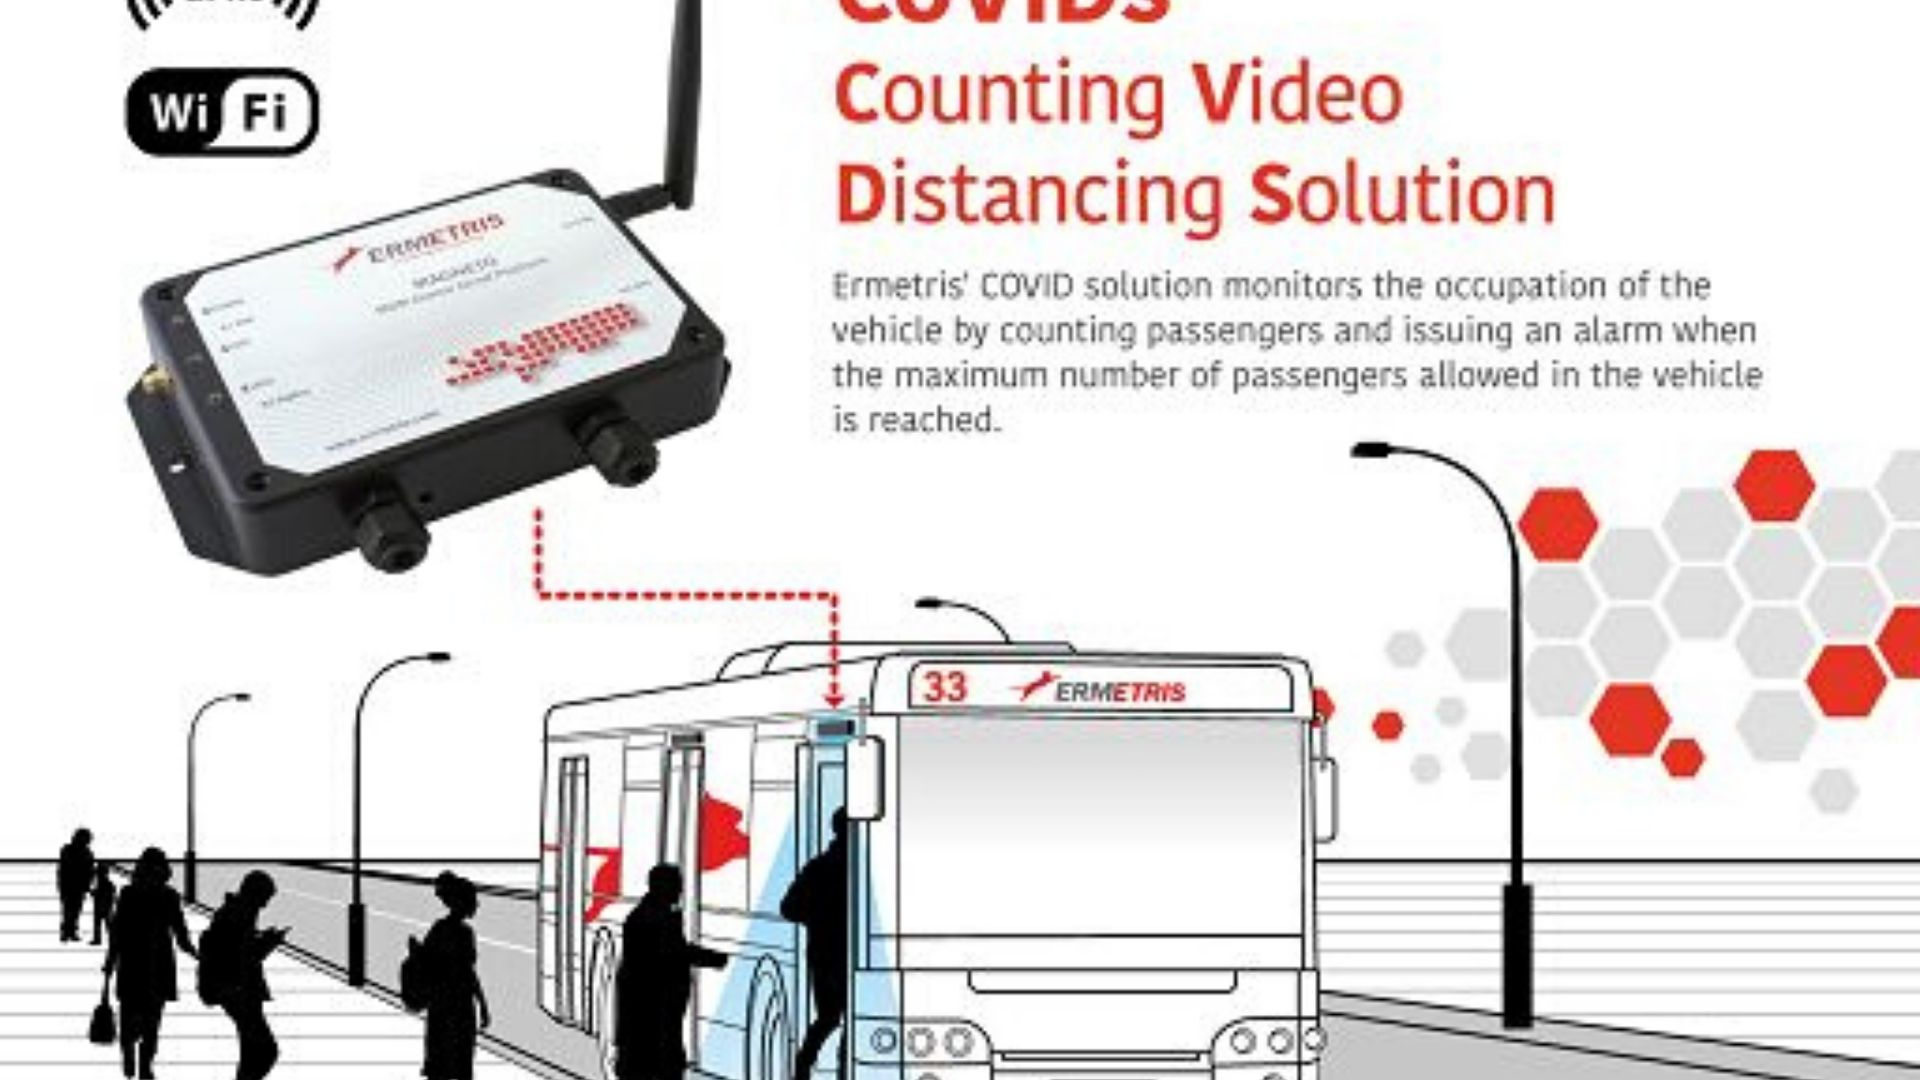 CoViDS_ Counting Video Distancing Solution